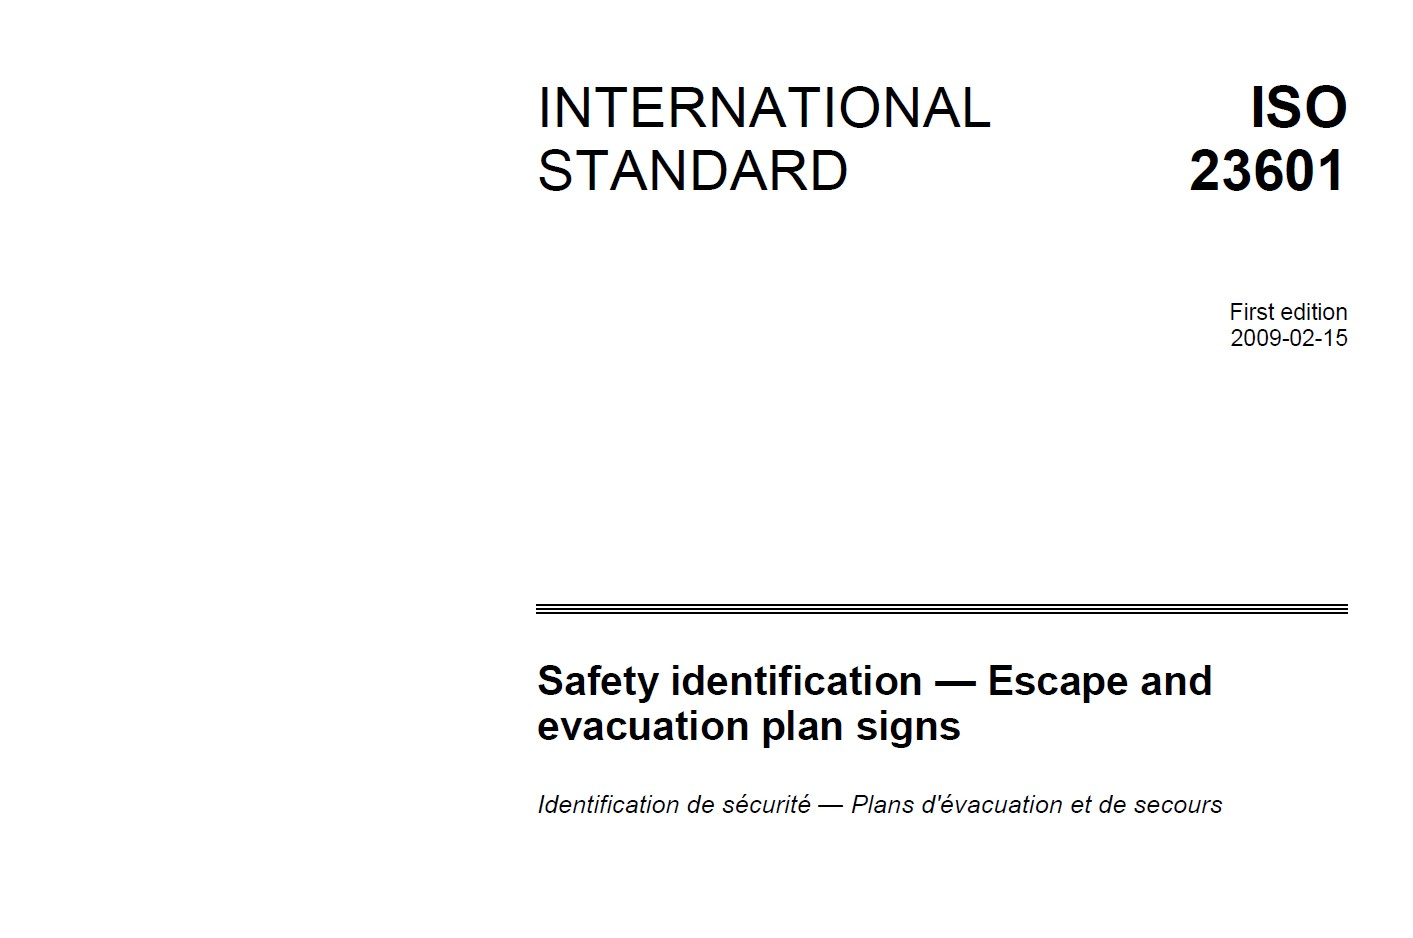 ISO 23601 Safety identification — Escape and evacuation plan signs